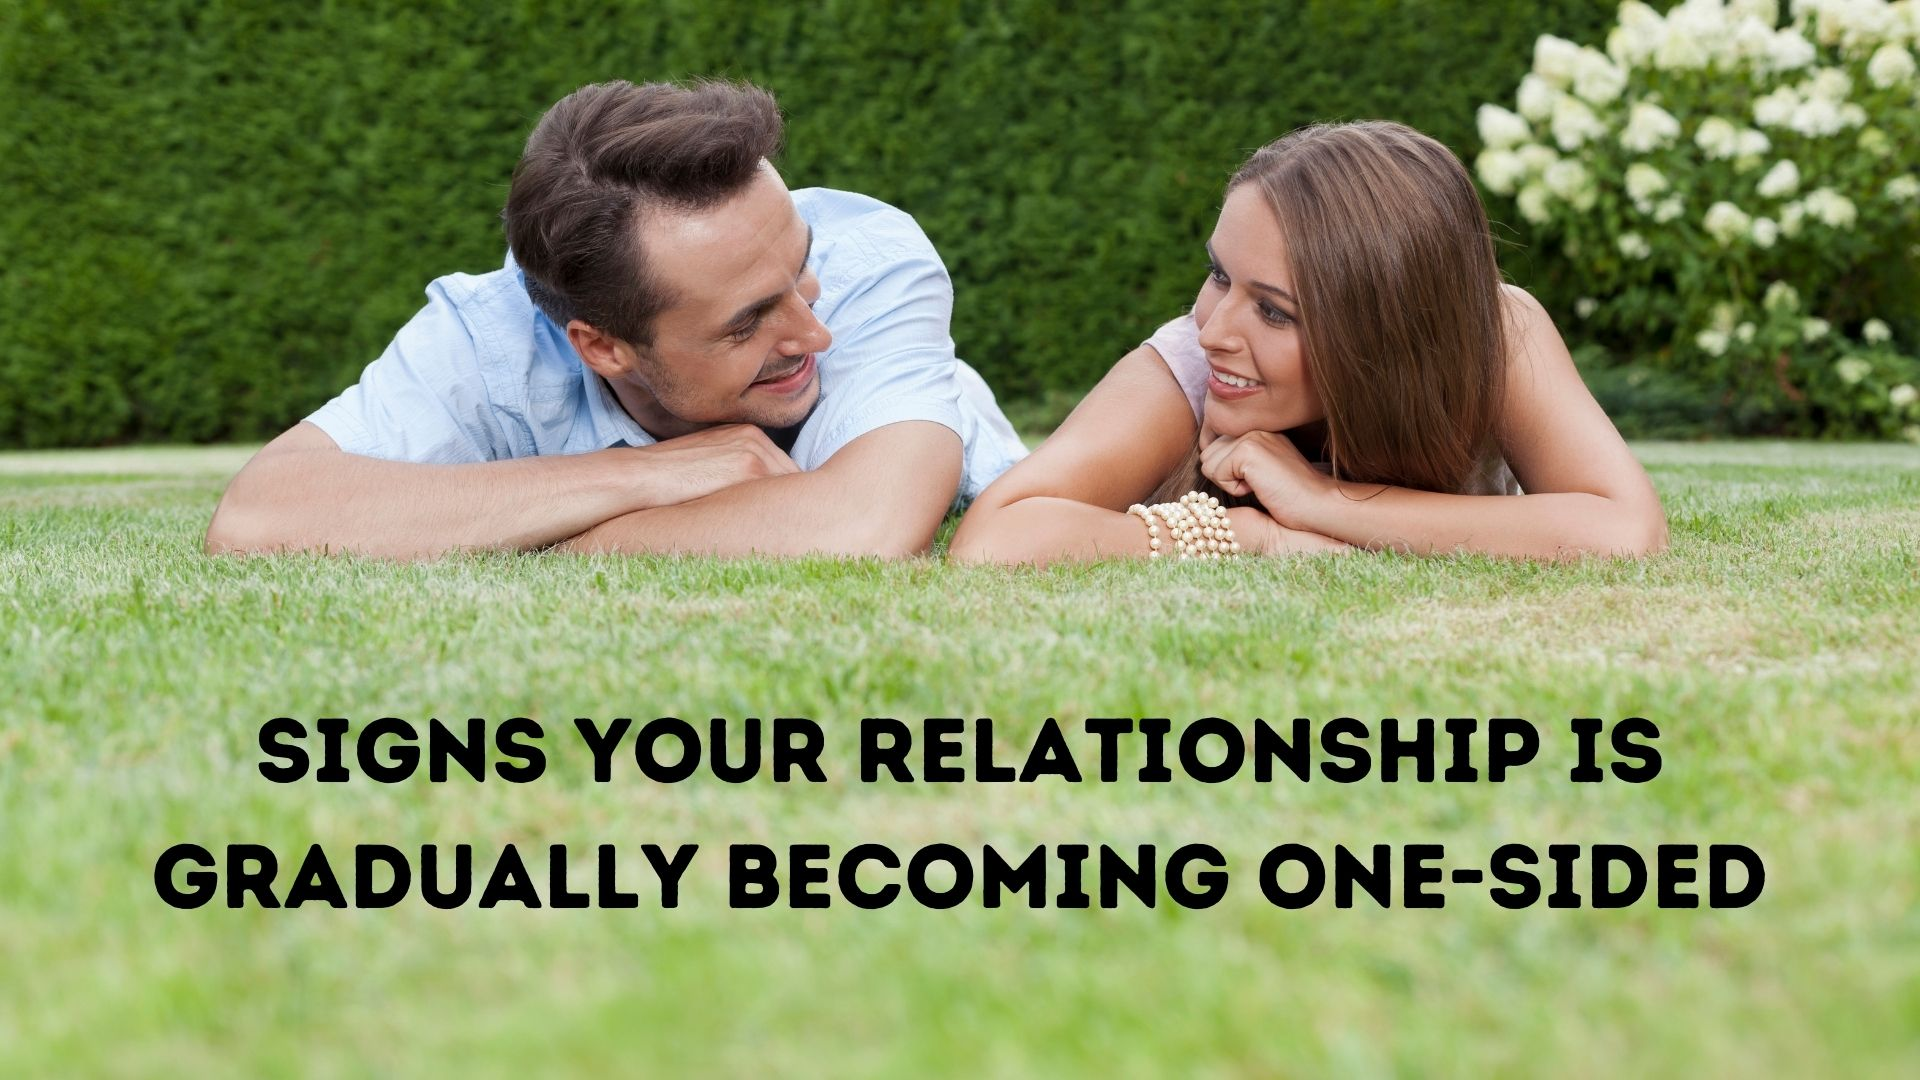 Signs Your Relationship Is Gradually Becoming One-Sided